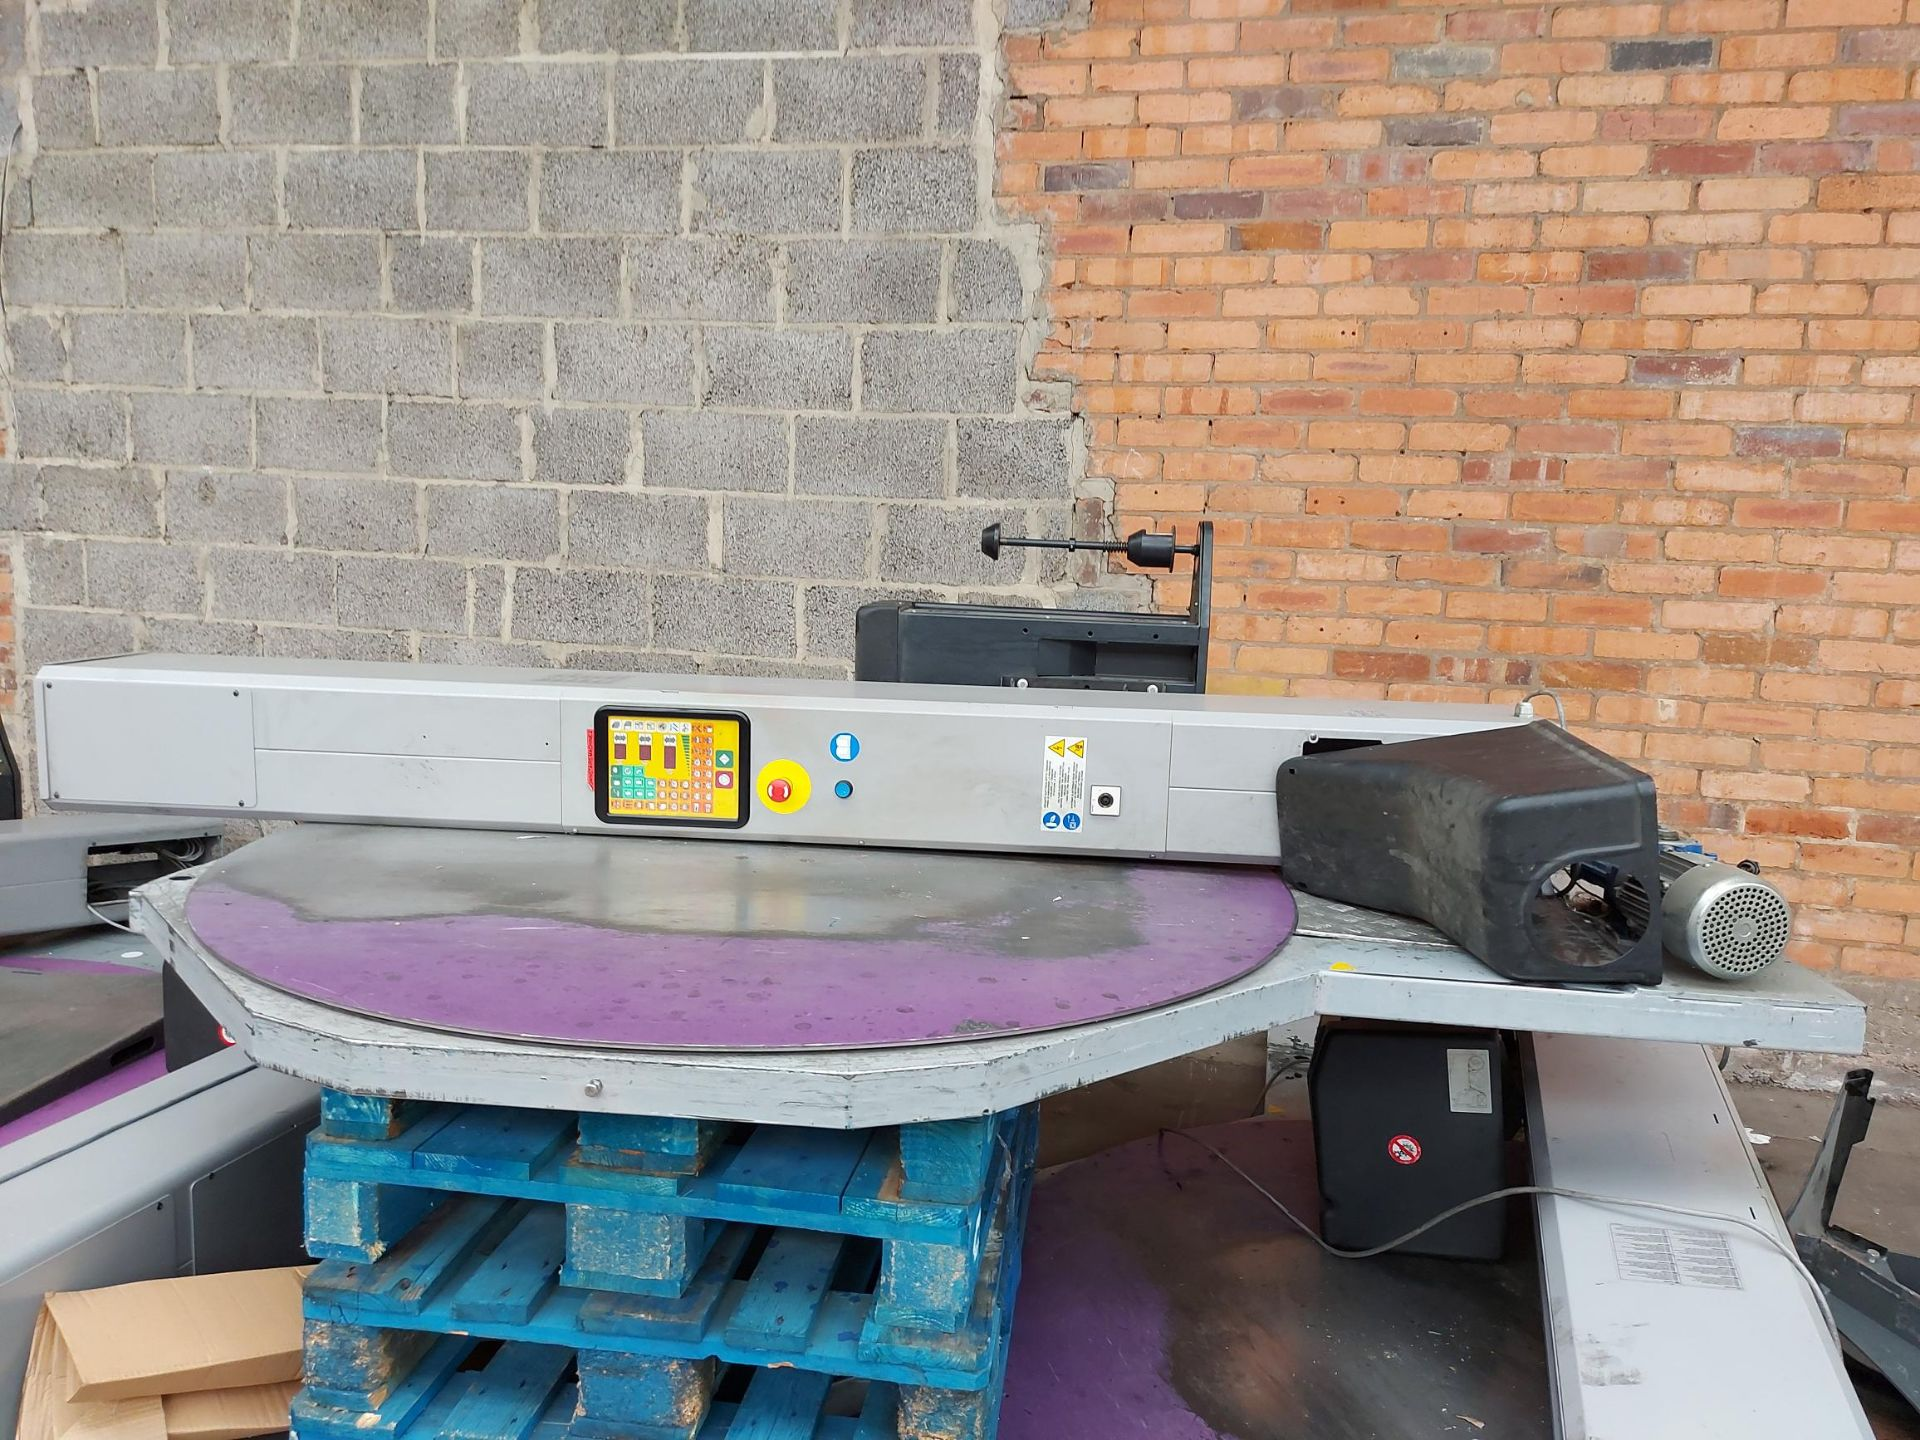 2016 ATLANTA FULL 115 DYNAMIC HIGHLINE TURNTABLE PALLET WRAPPING MACHINE. 2.4M MAST HEIGHT. 1.65M - Image 4 of 5